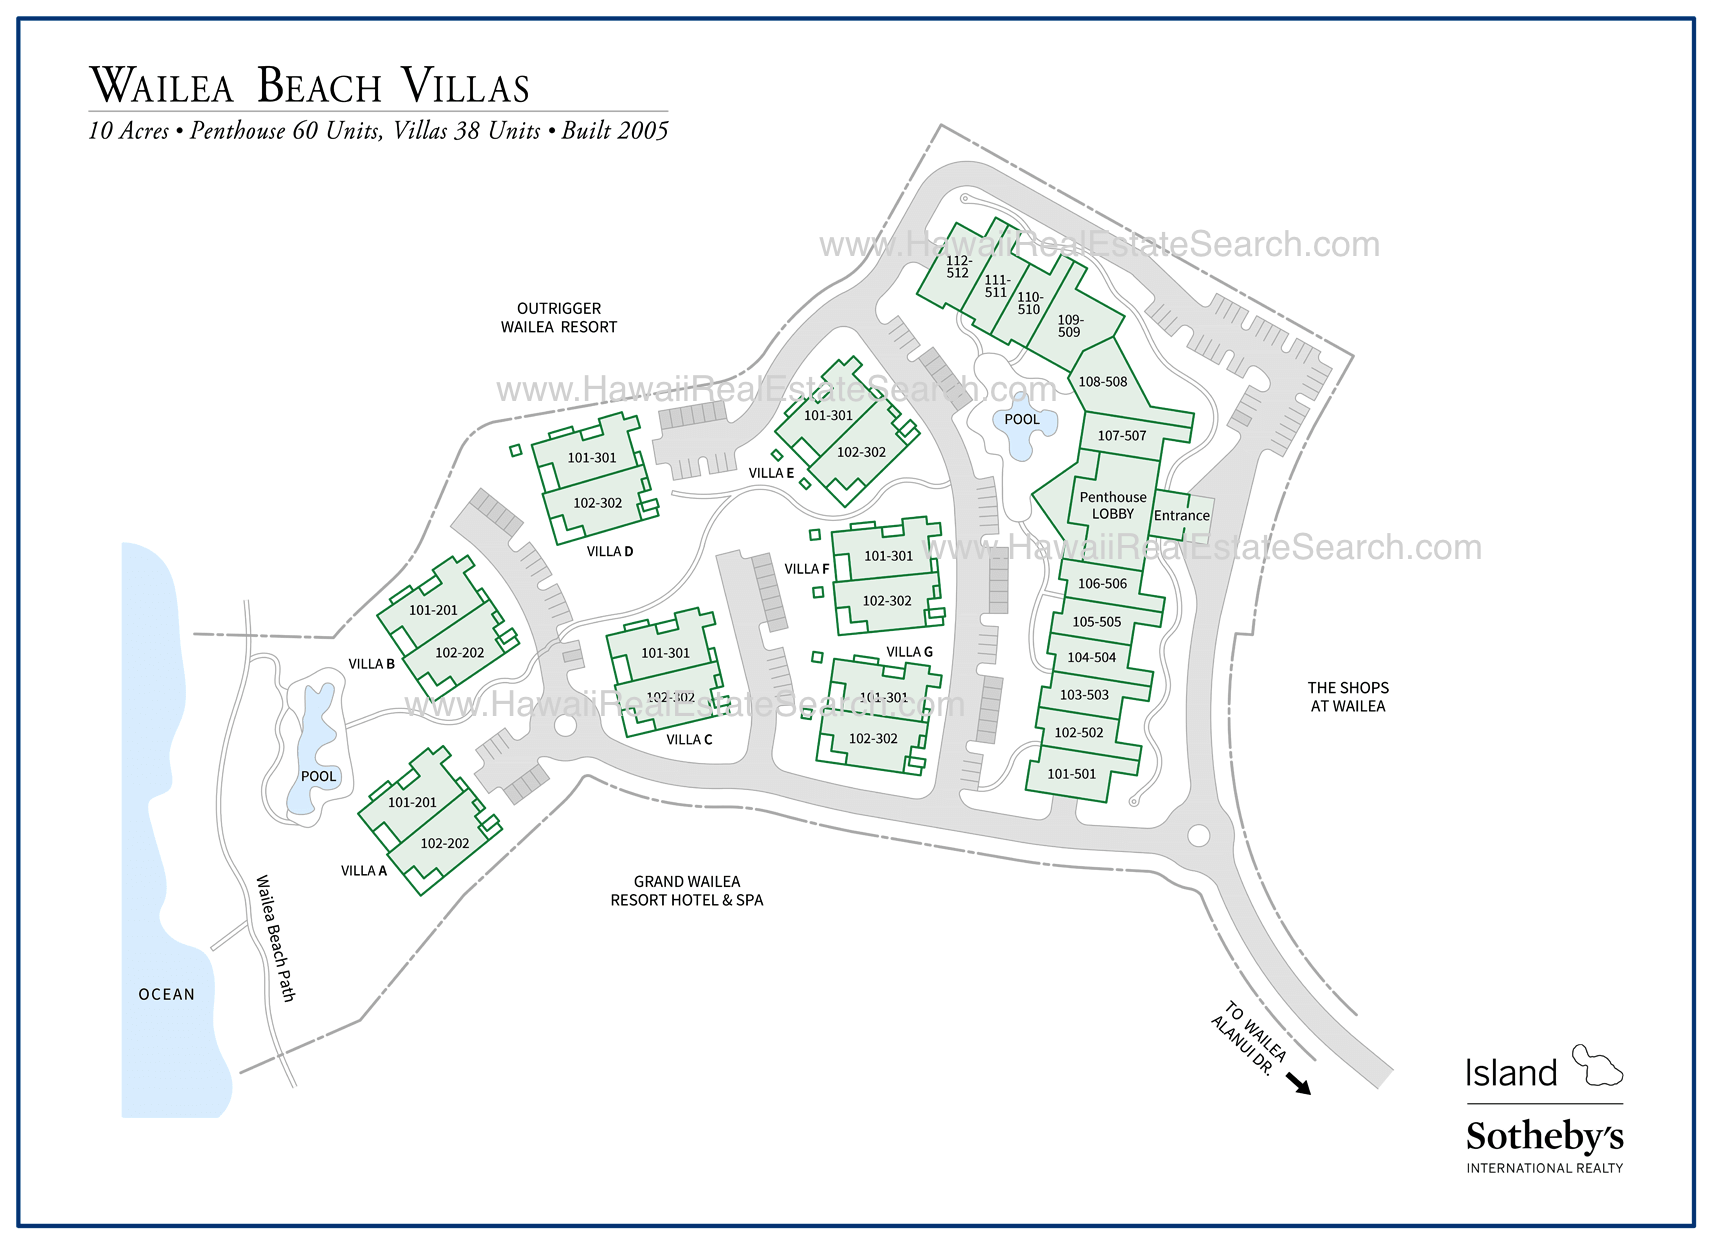 Wailea Beach Villas For Sale 8 Condos Average 3 3m